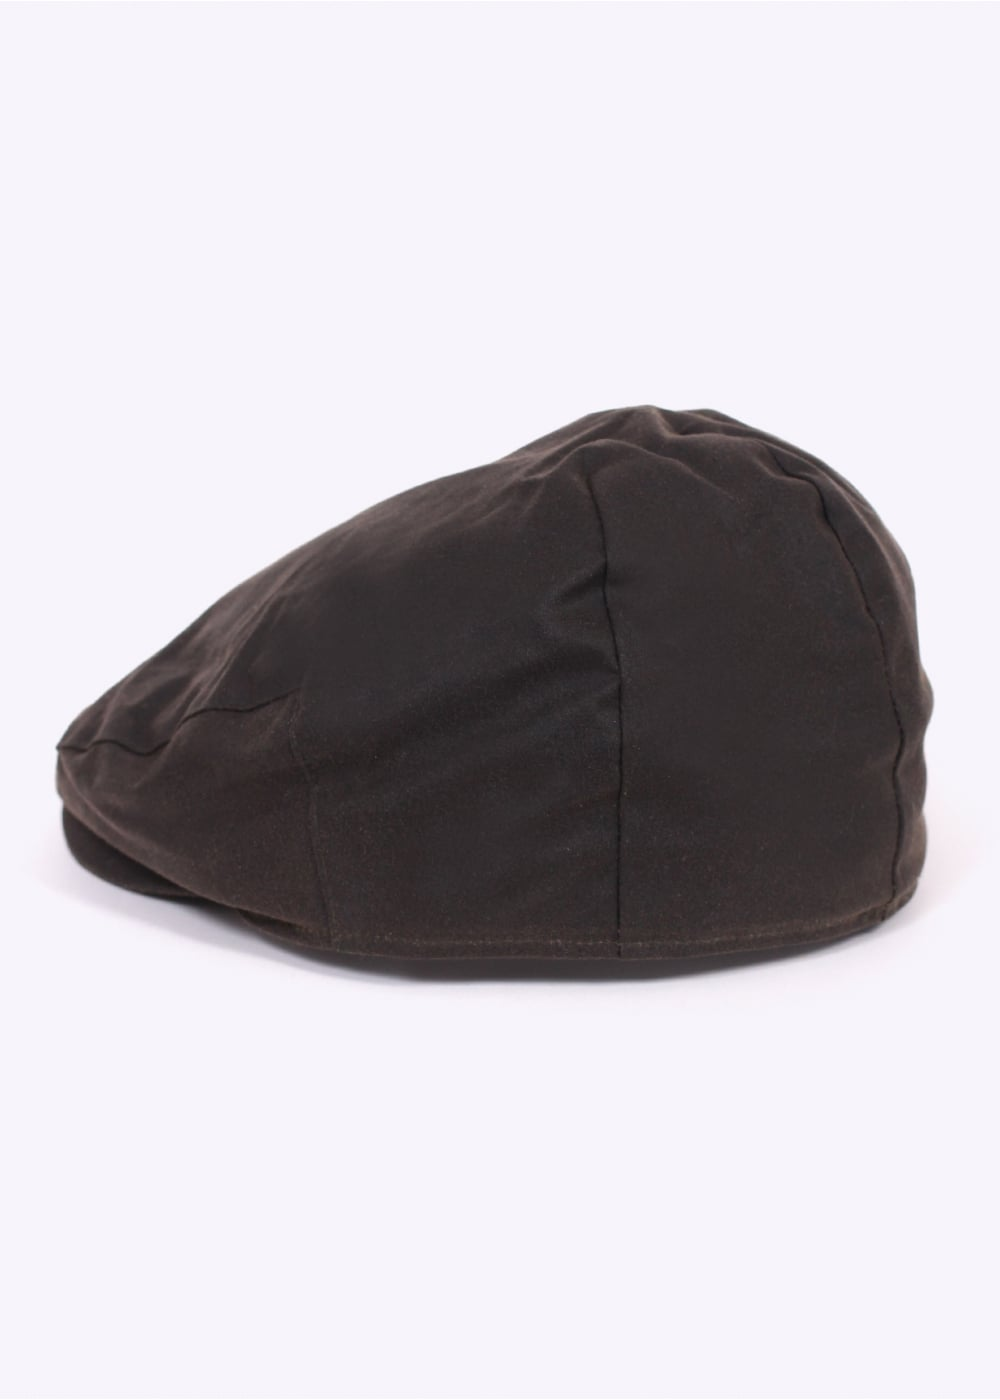 Barbour Sylkoil Wax Cap Olive Triads Mens From Triads Uk